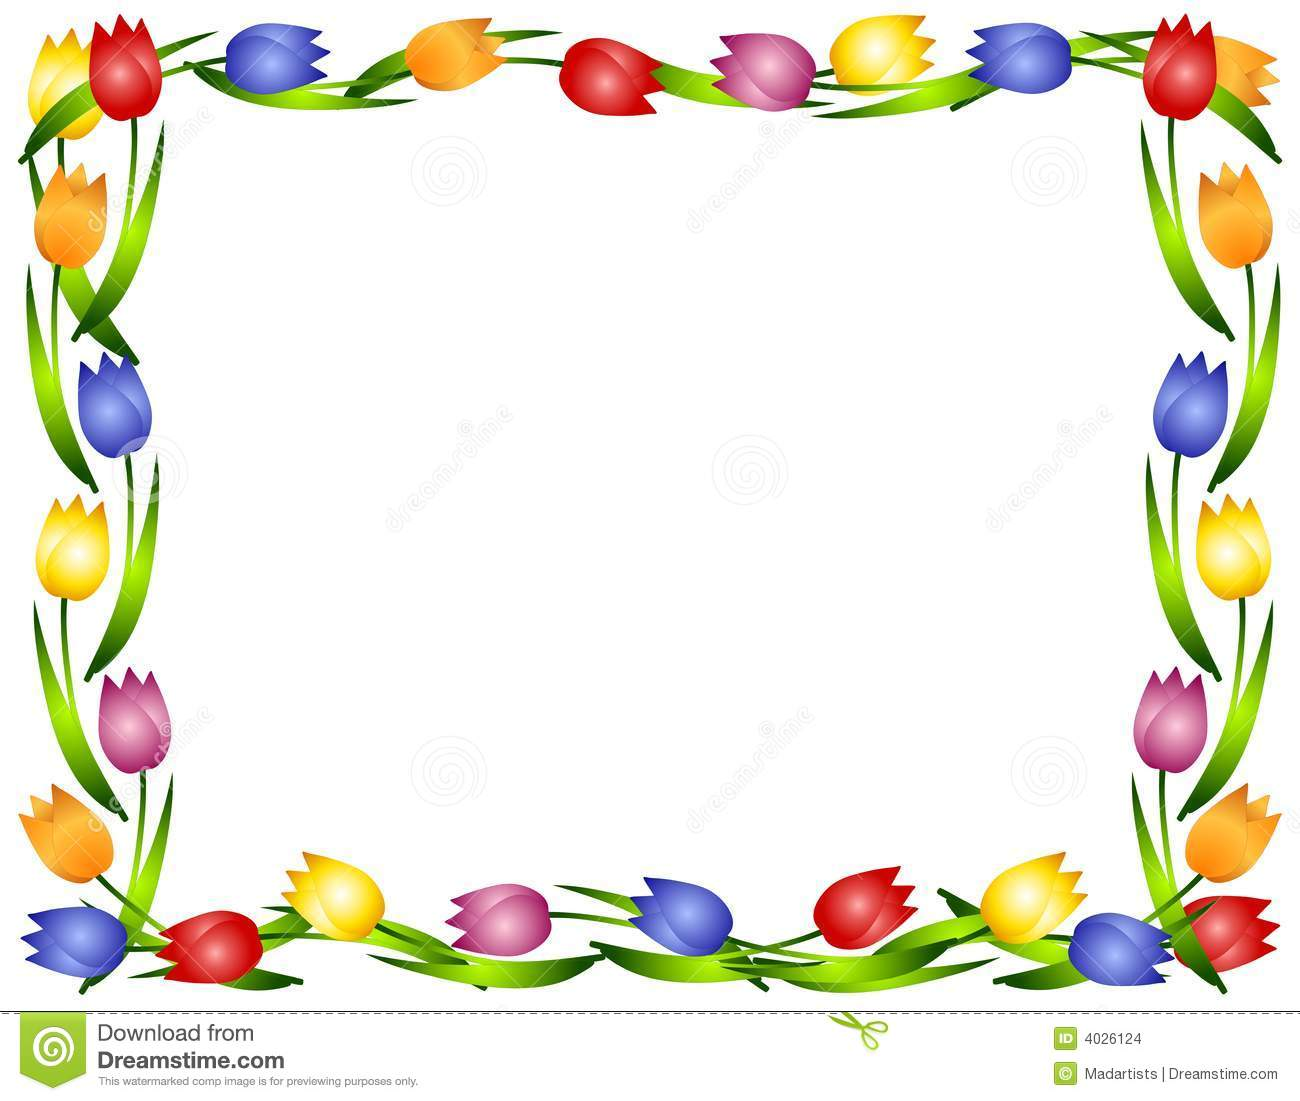 Spring clipart border graphic free stock 50th Birthday Clip Art Borders | Clipart Panda - Free Clipart Images graphic free stock